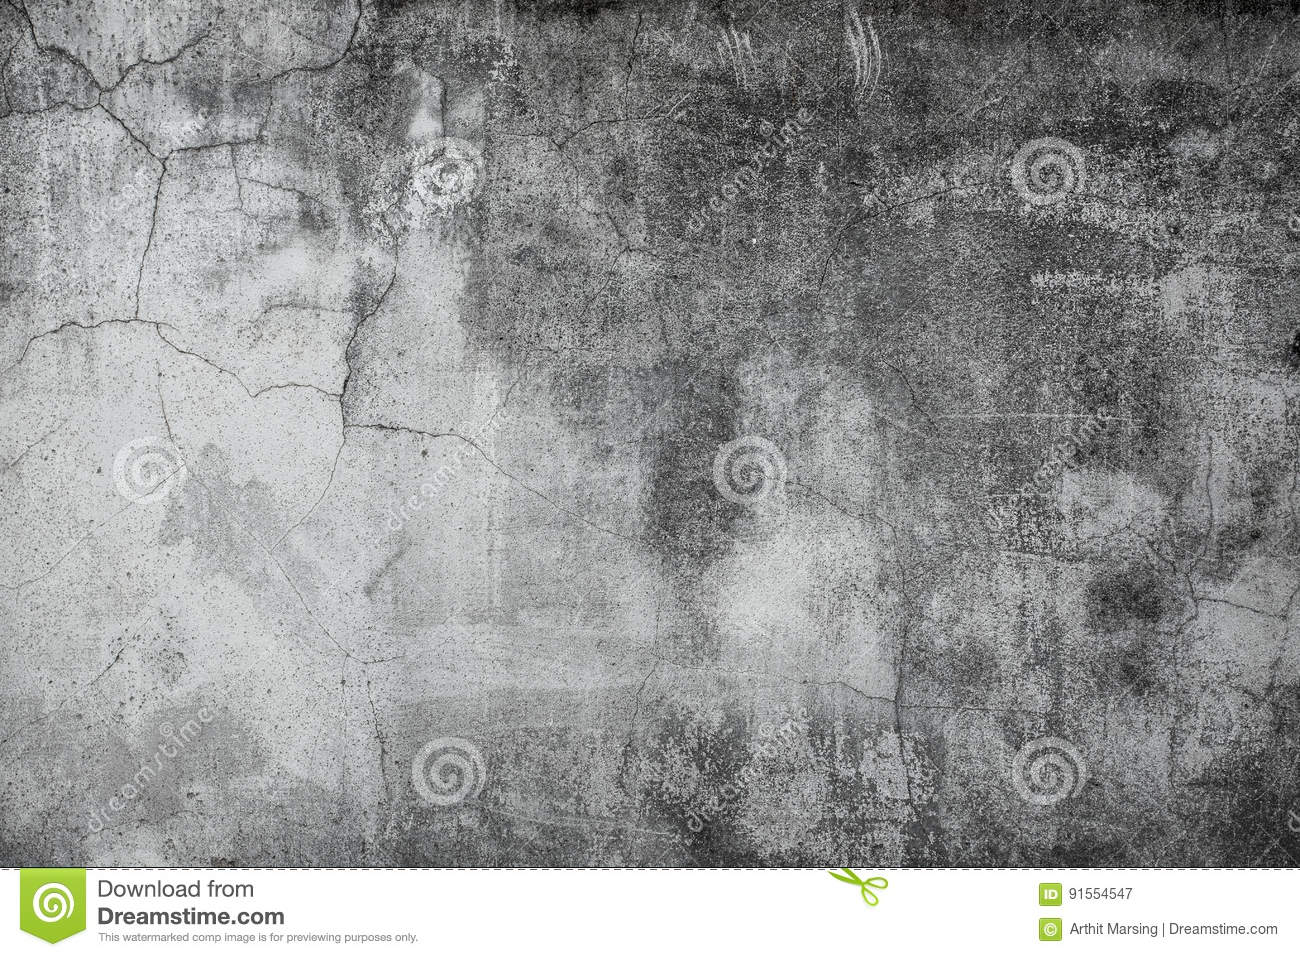 Wall and Floor textures background.